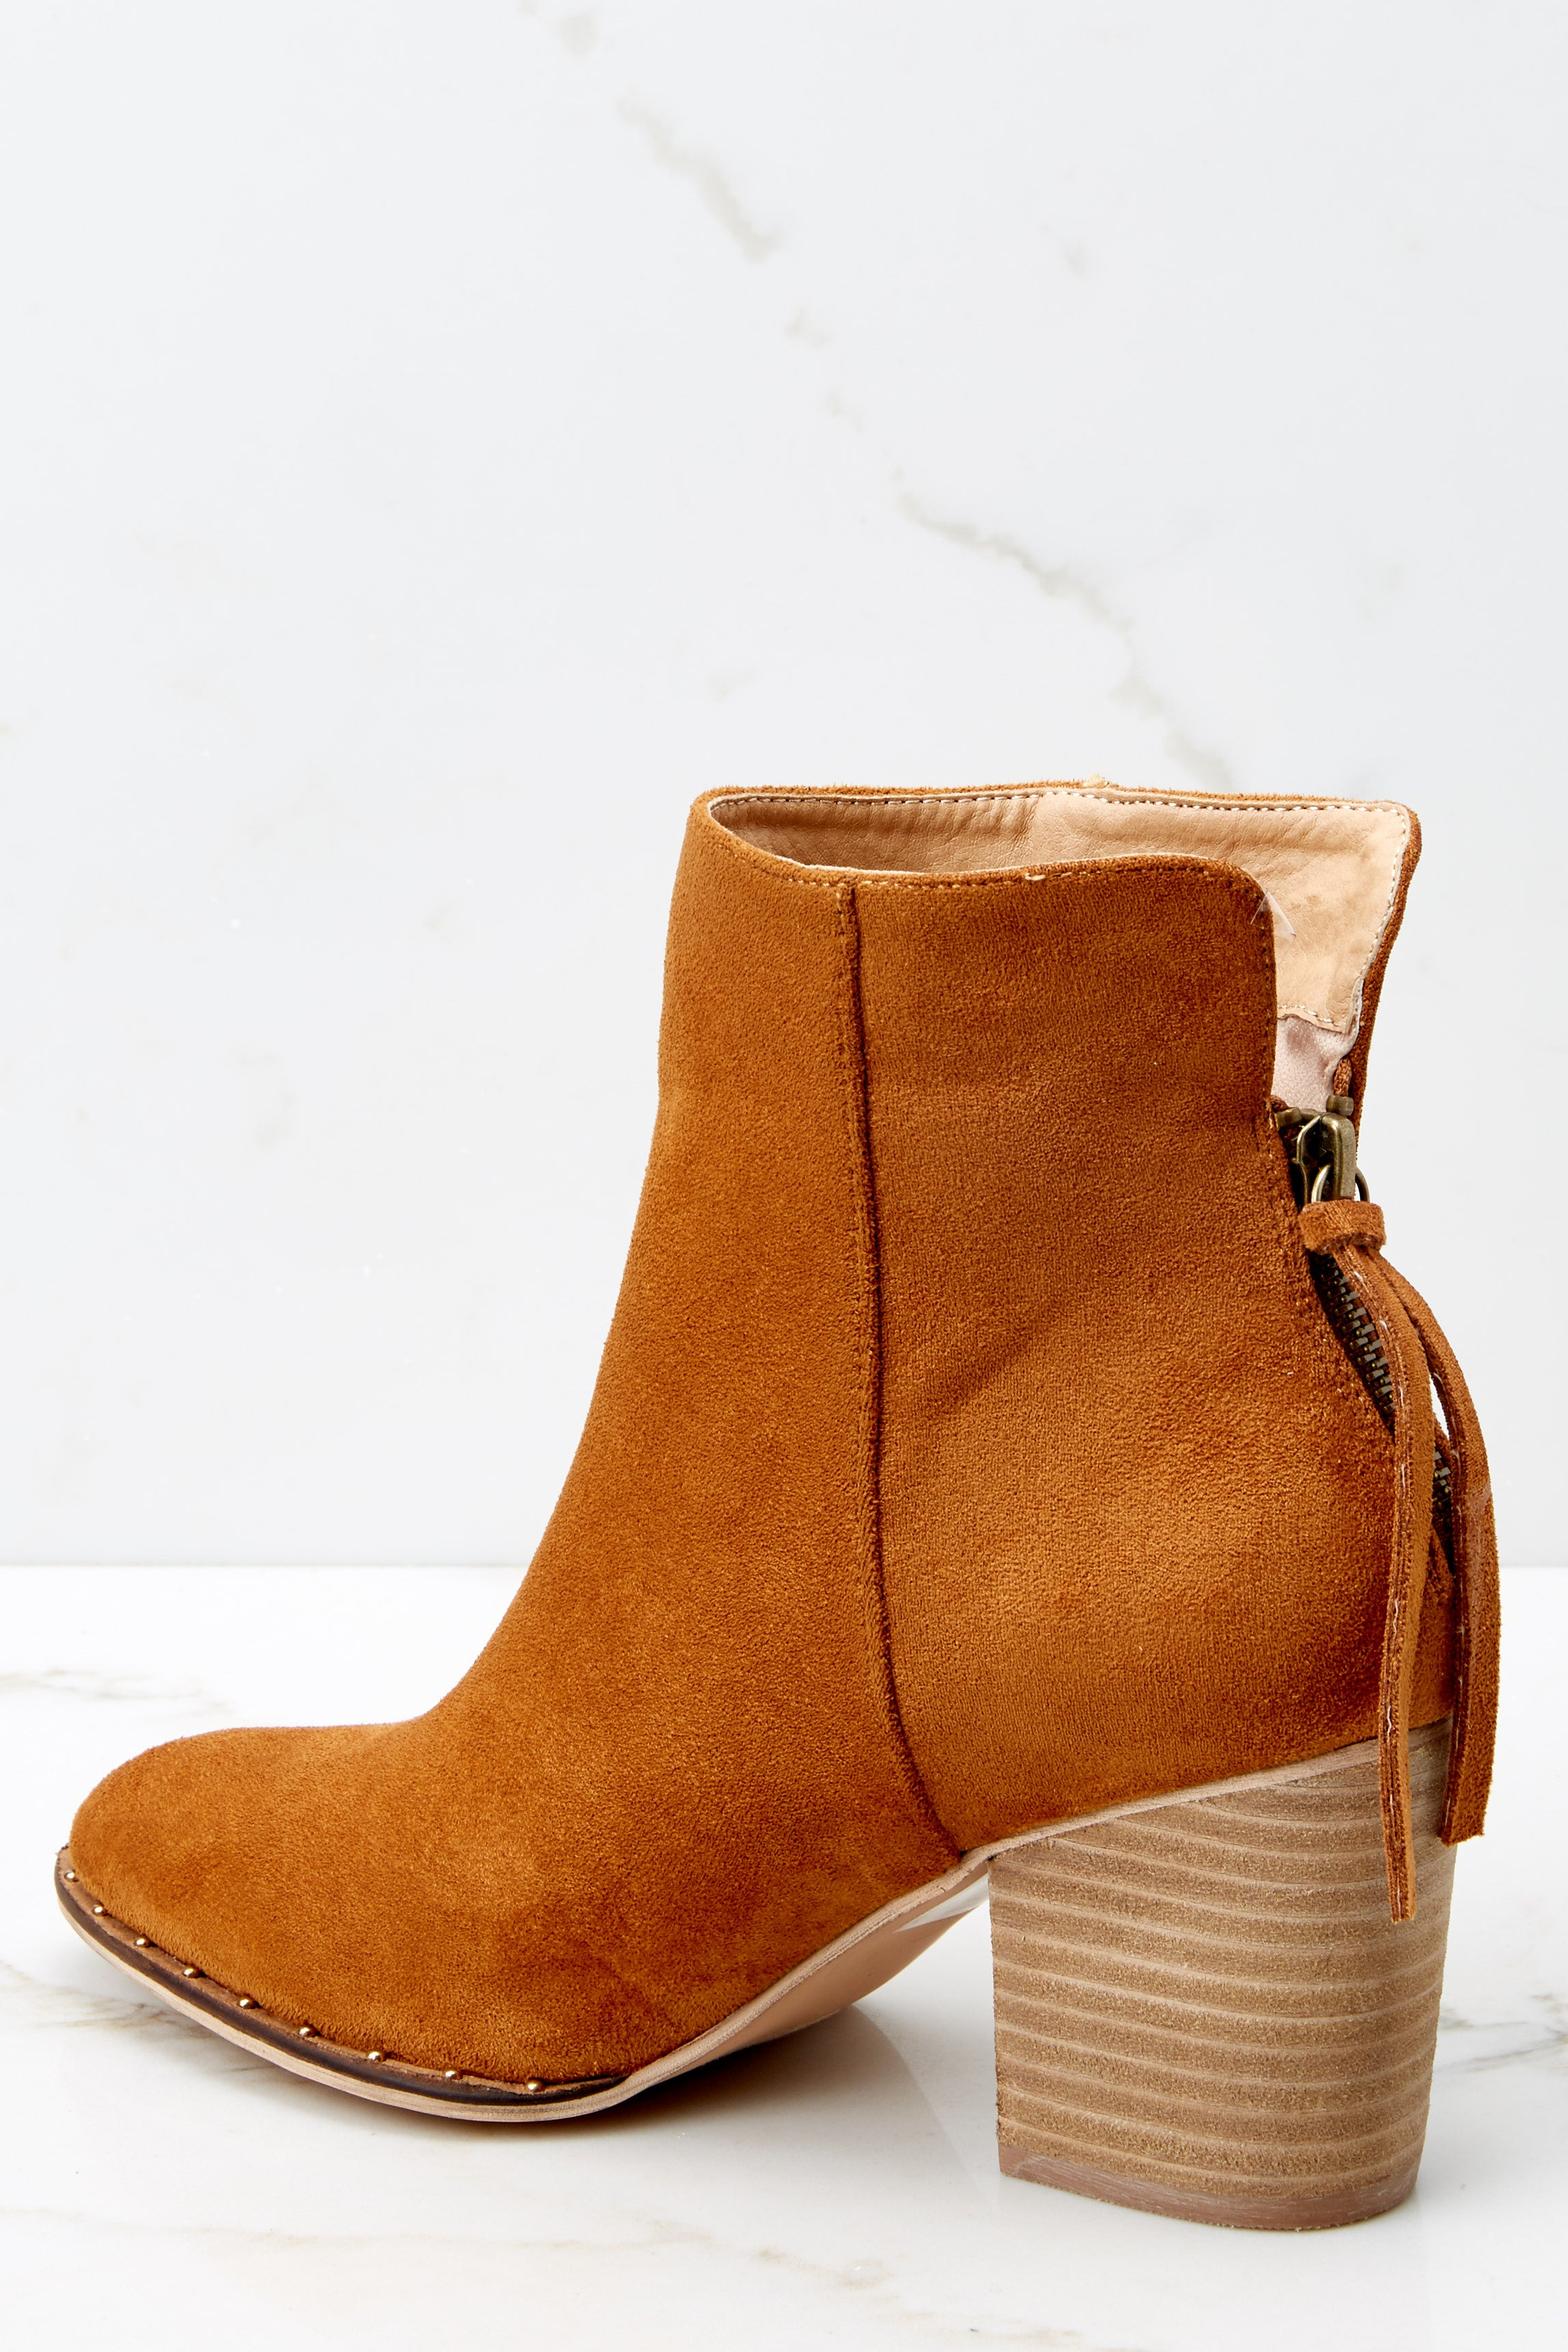 4 Taking These With Me Caramel Brown Ankle Booties at reddress.com